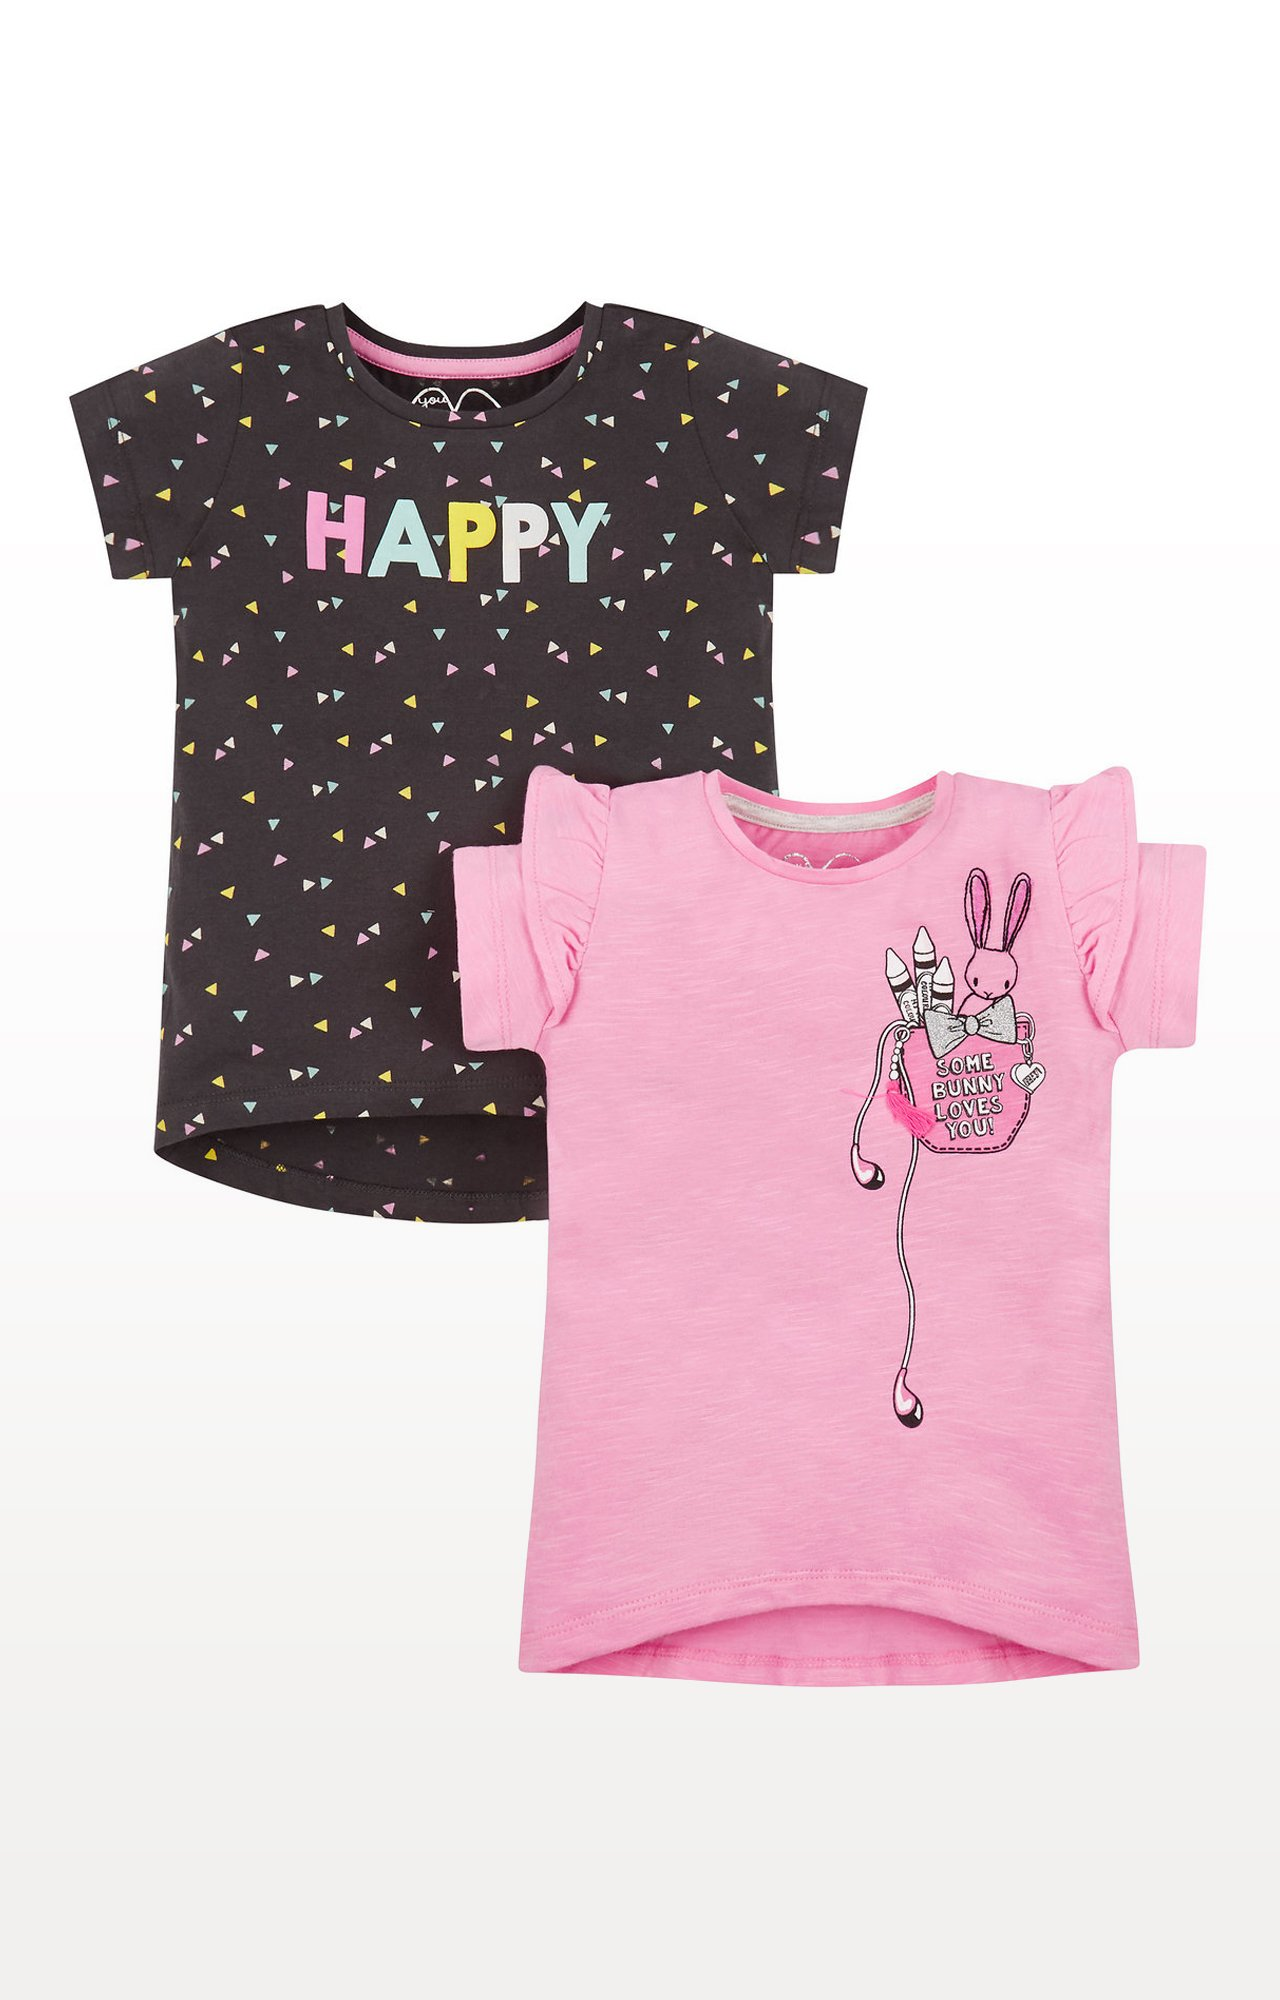 Mothercare | Brown and Pink Printed T-Shirt - Pack of 2